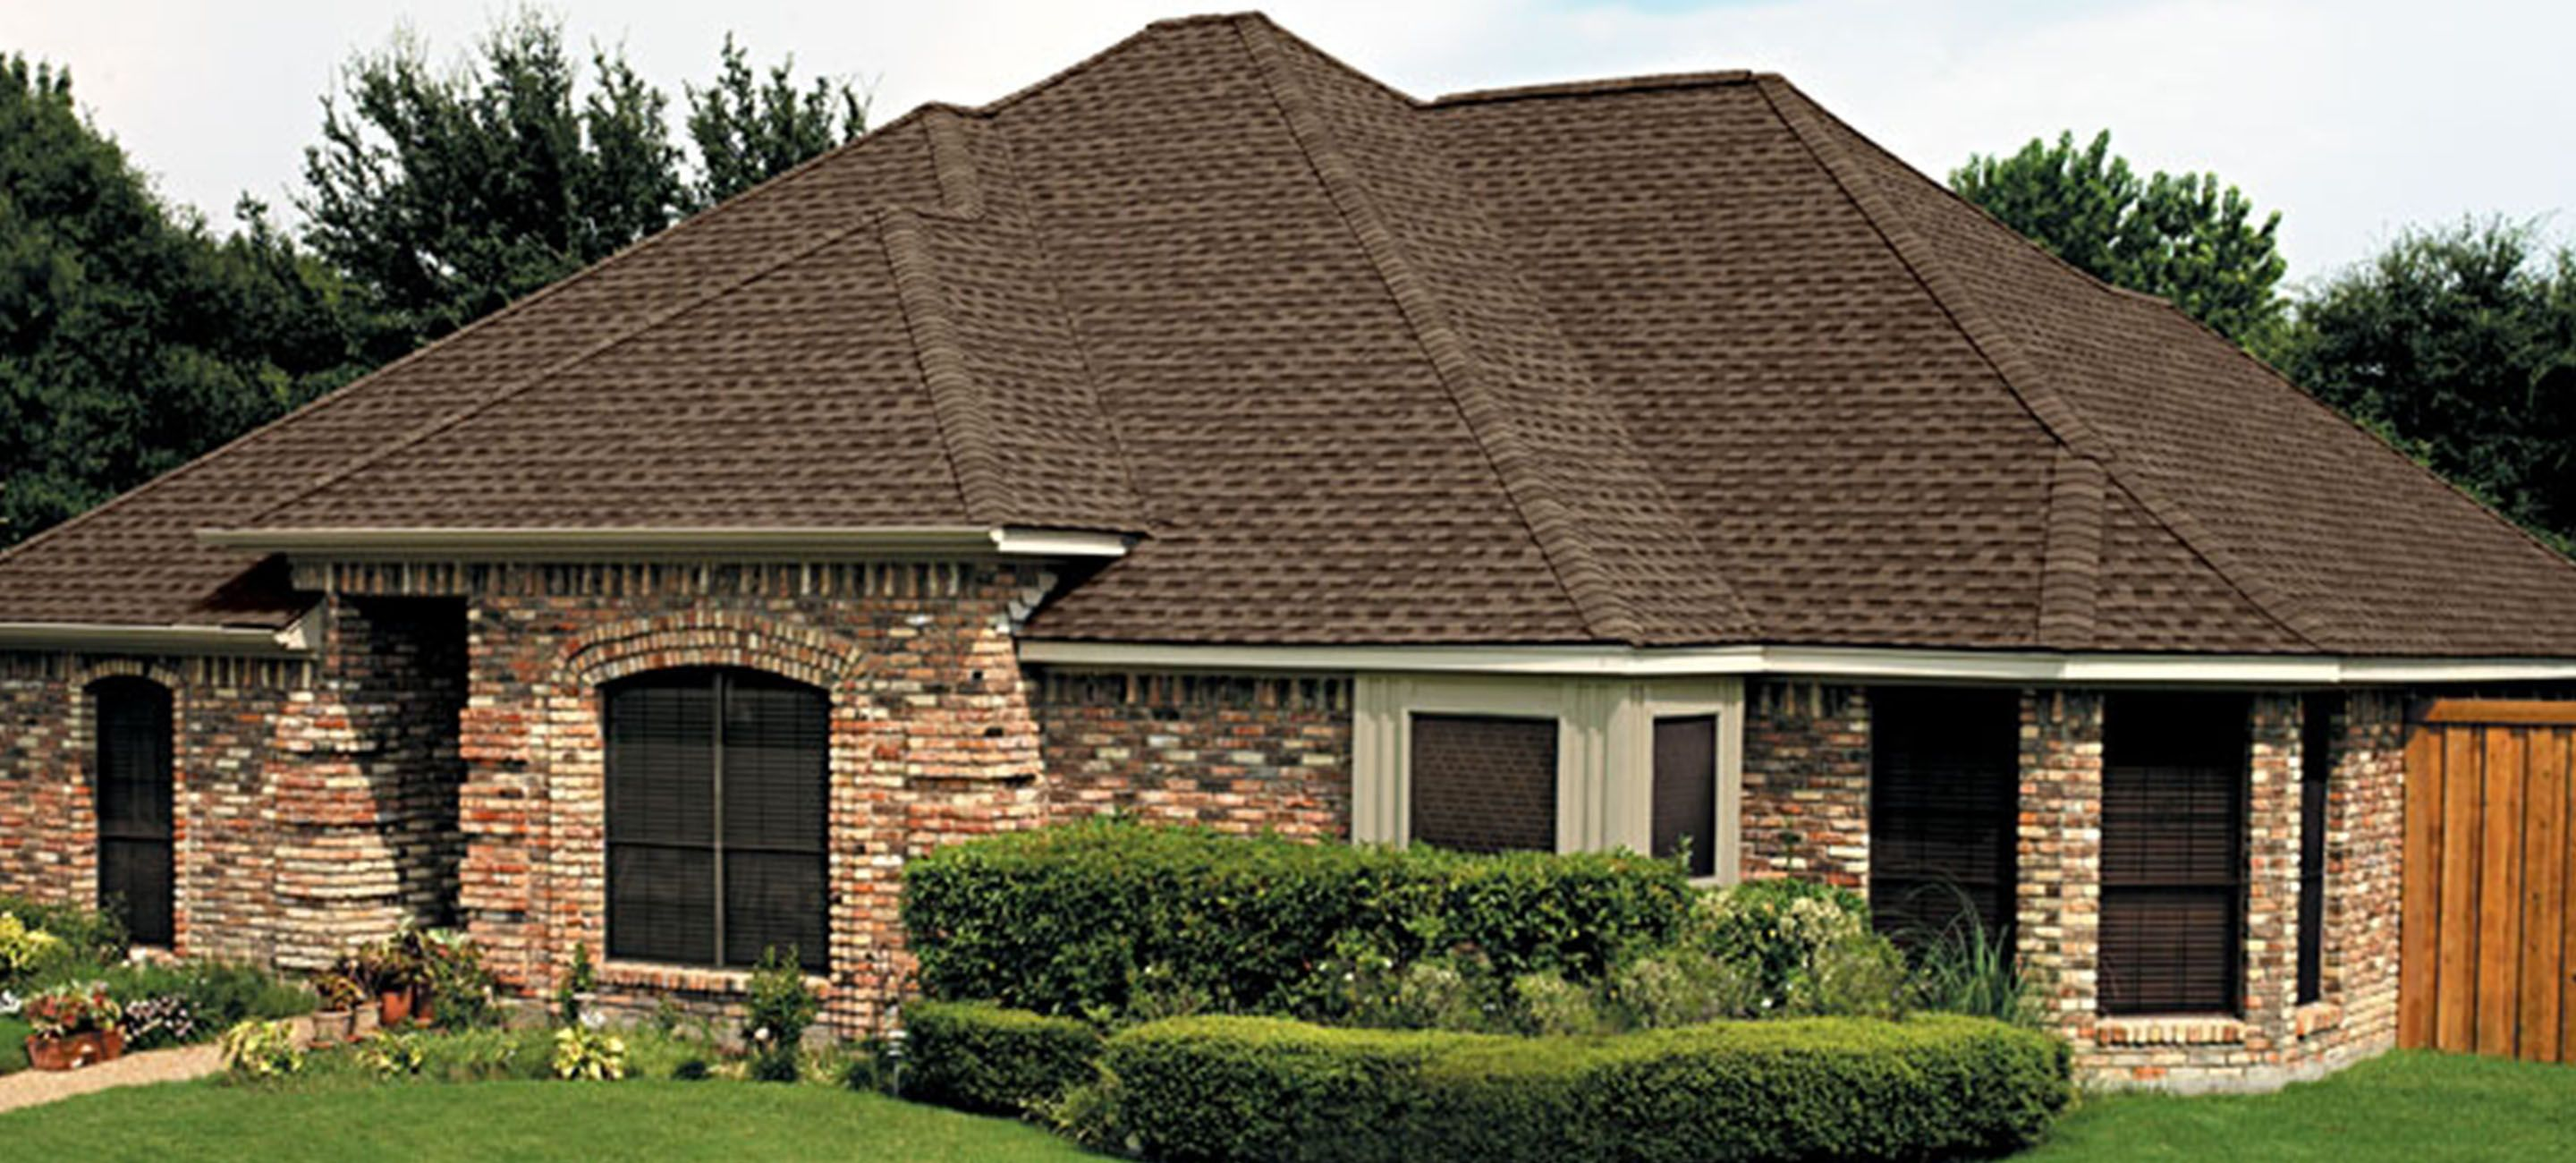 Best Gaf Timberline Ultra Hd® Roofing Shingles Residential 400 x 300